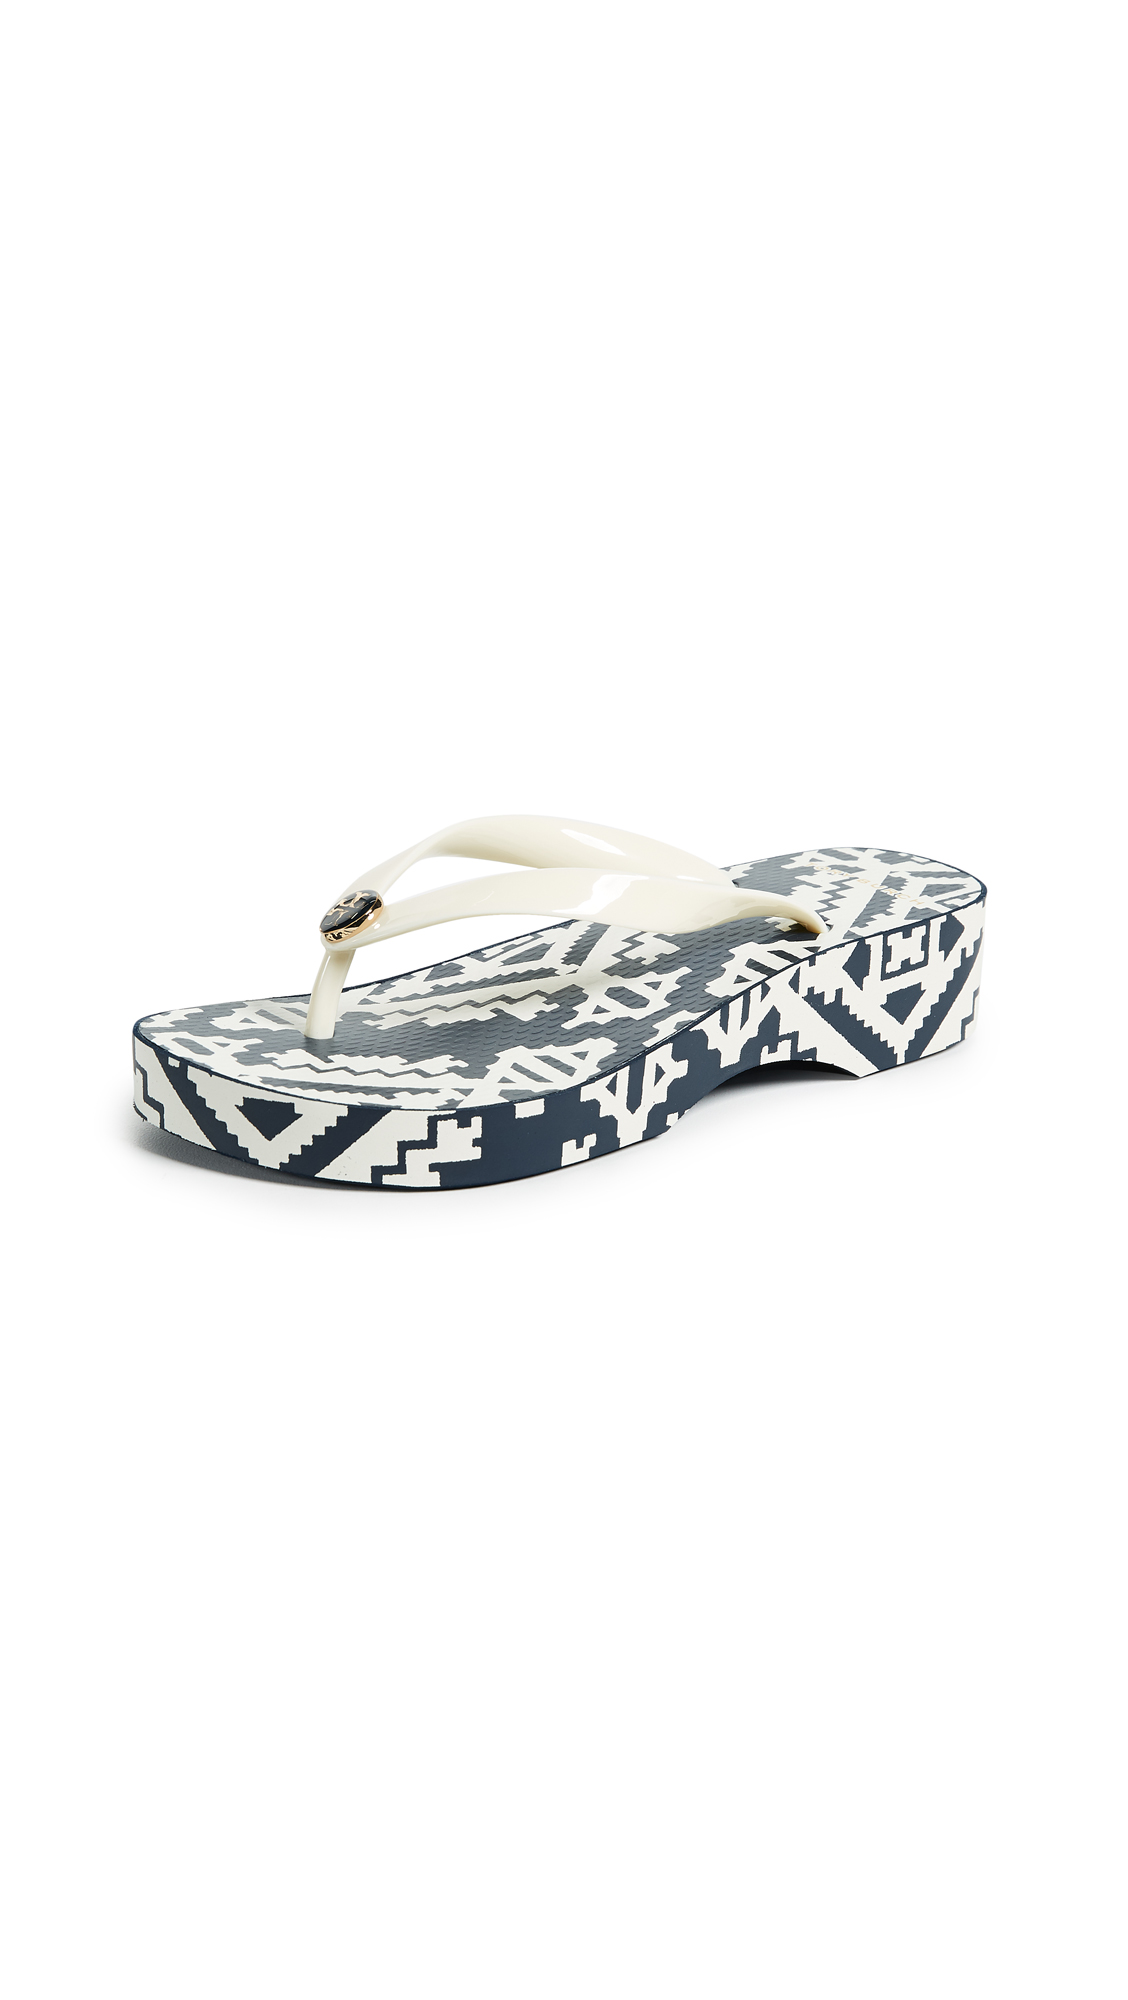 Tory Burch Cutout Wedge Flip Flops - Perfect Ivory/Tapestry Geo